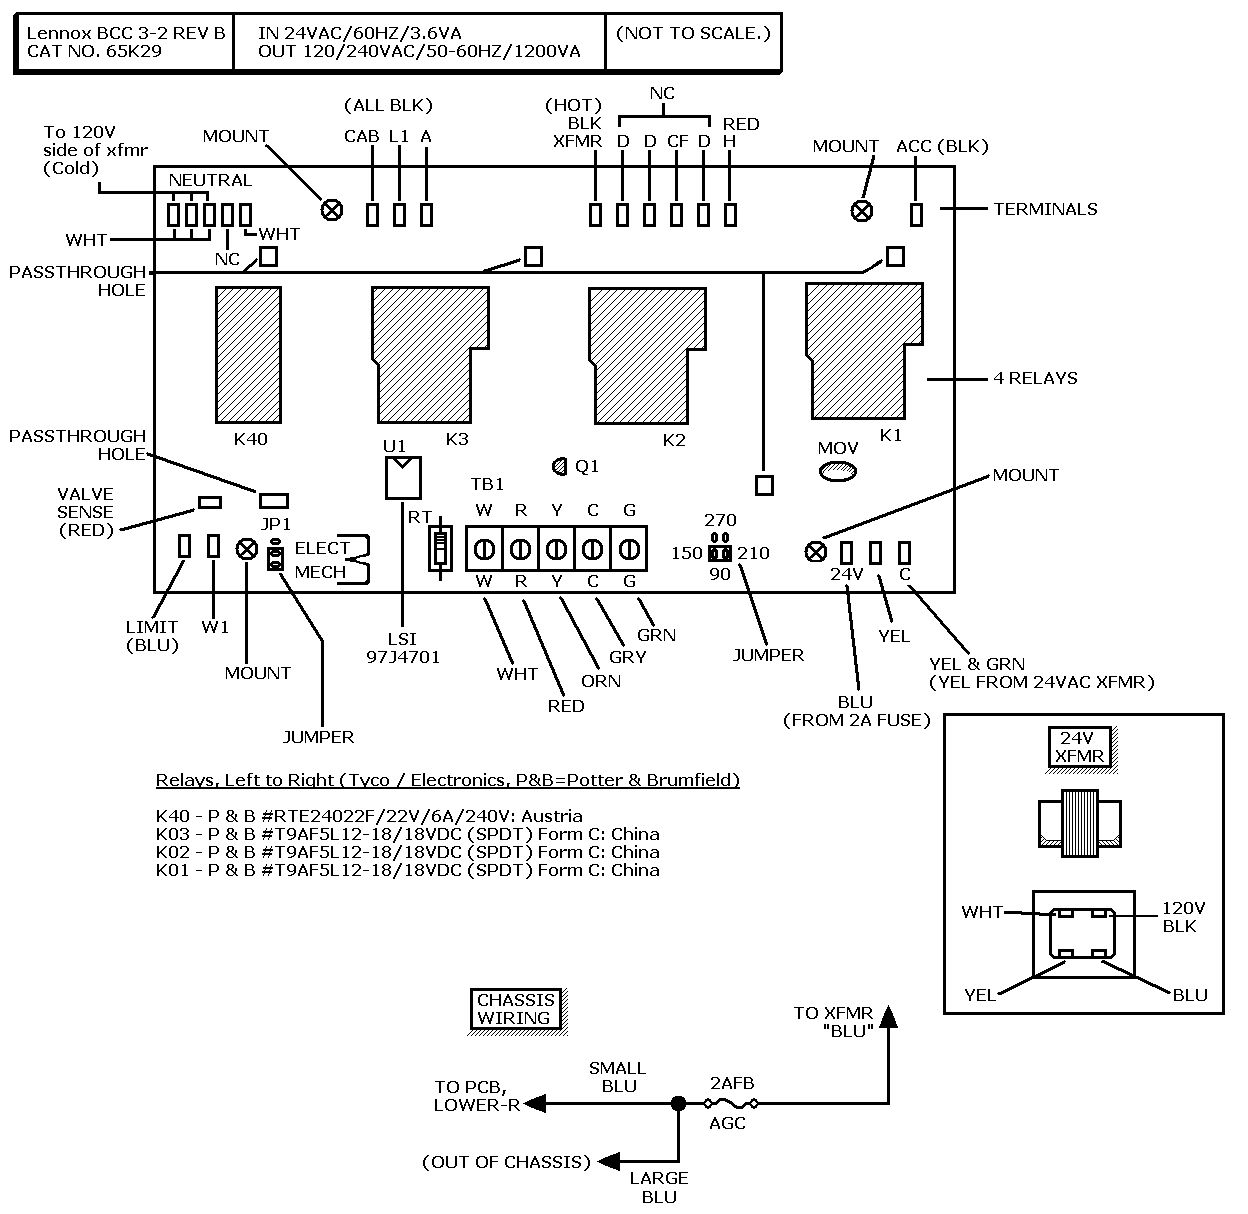 Fresh Lennox Furnace Thermostat Wiring Diagram 18 In Fender Jazz And Thermostat Wiring Hvac Control Lennox